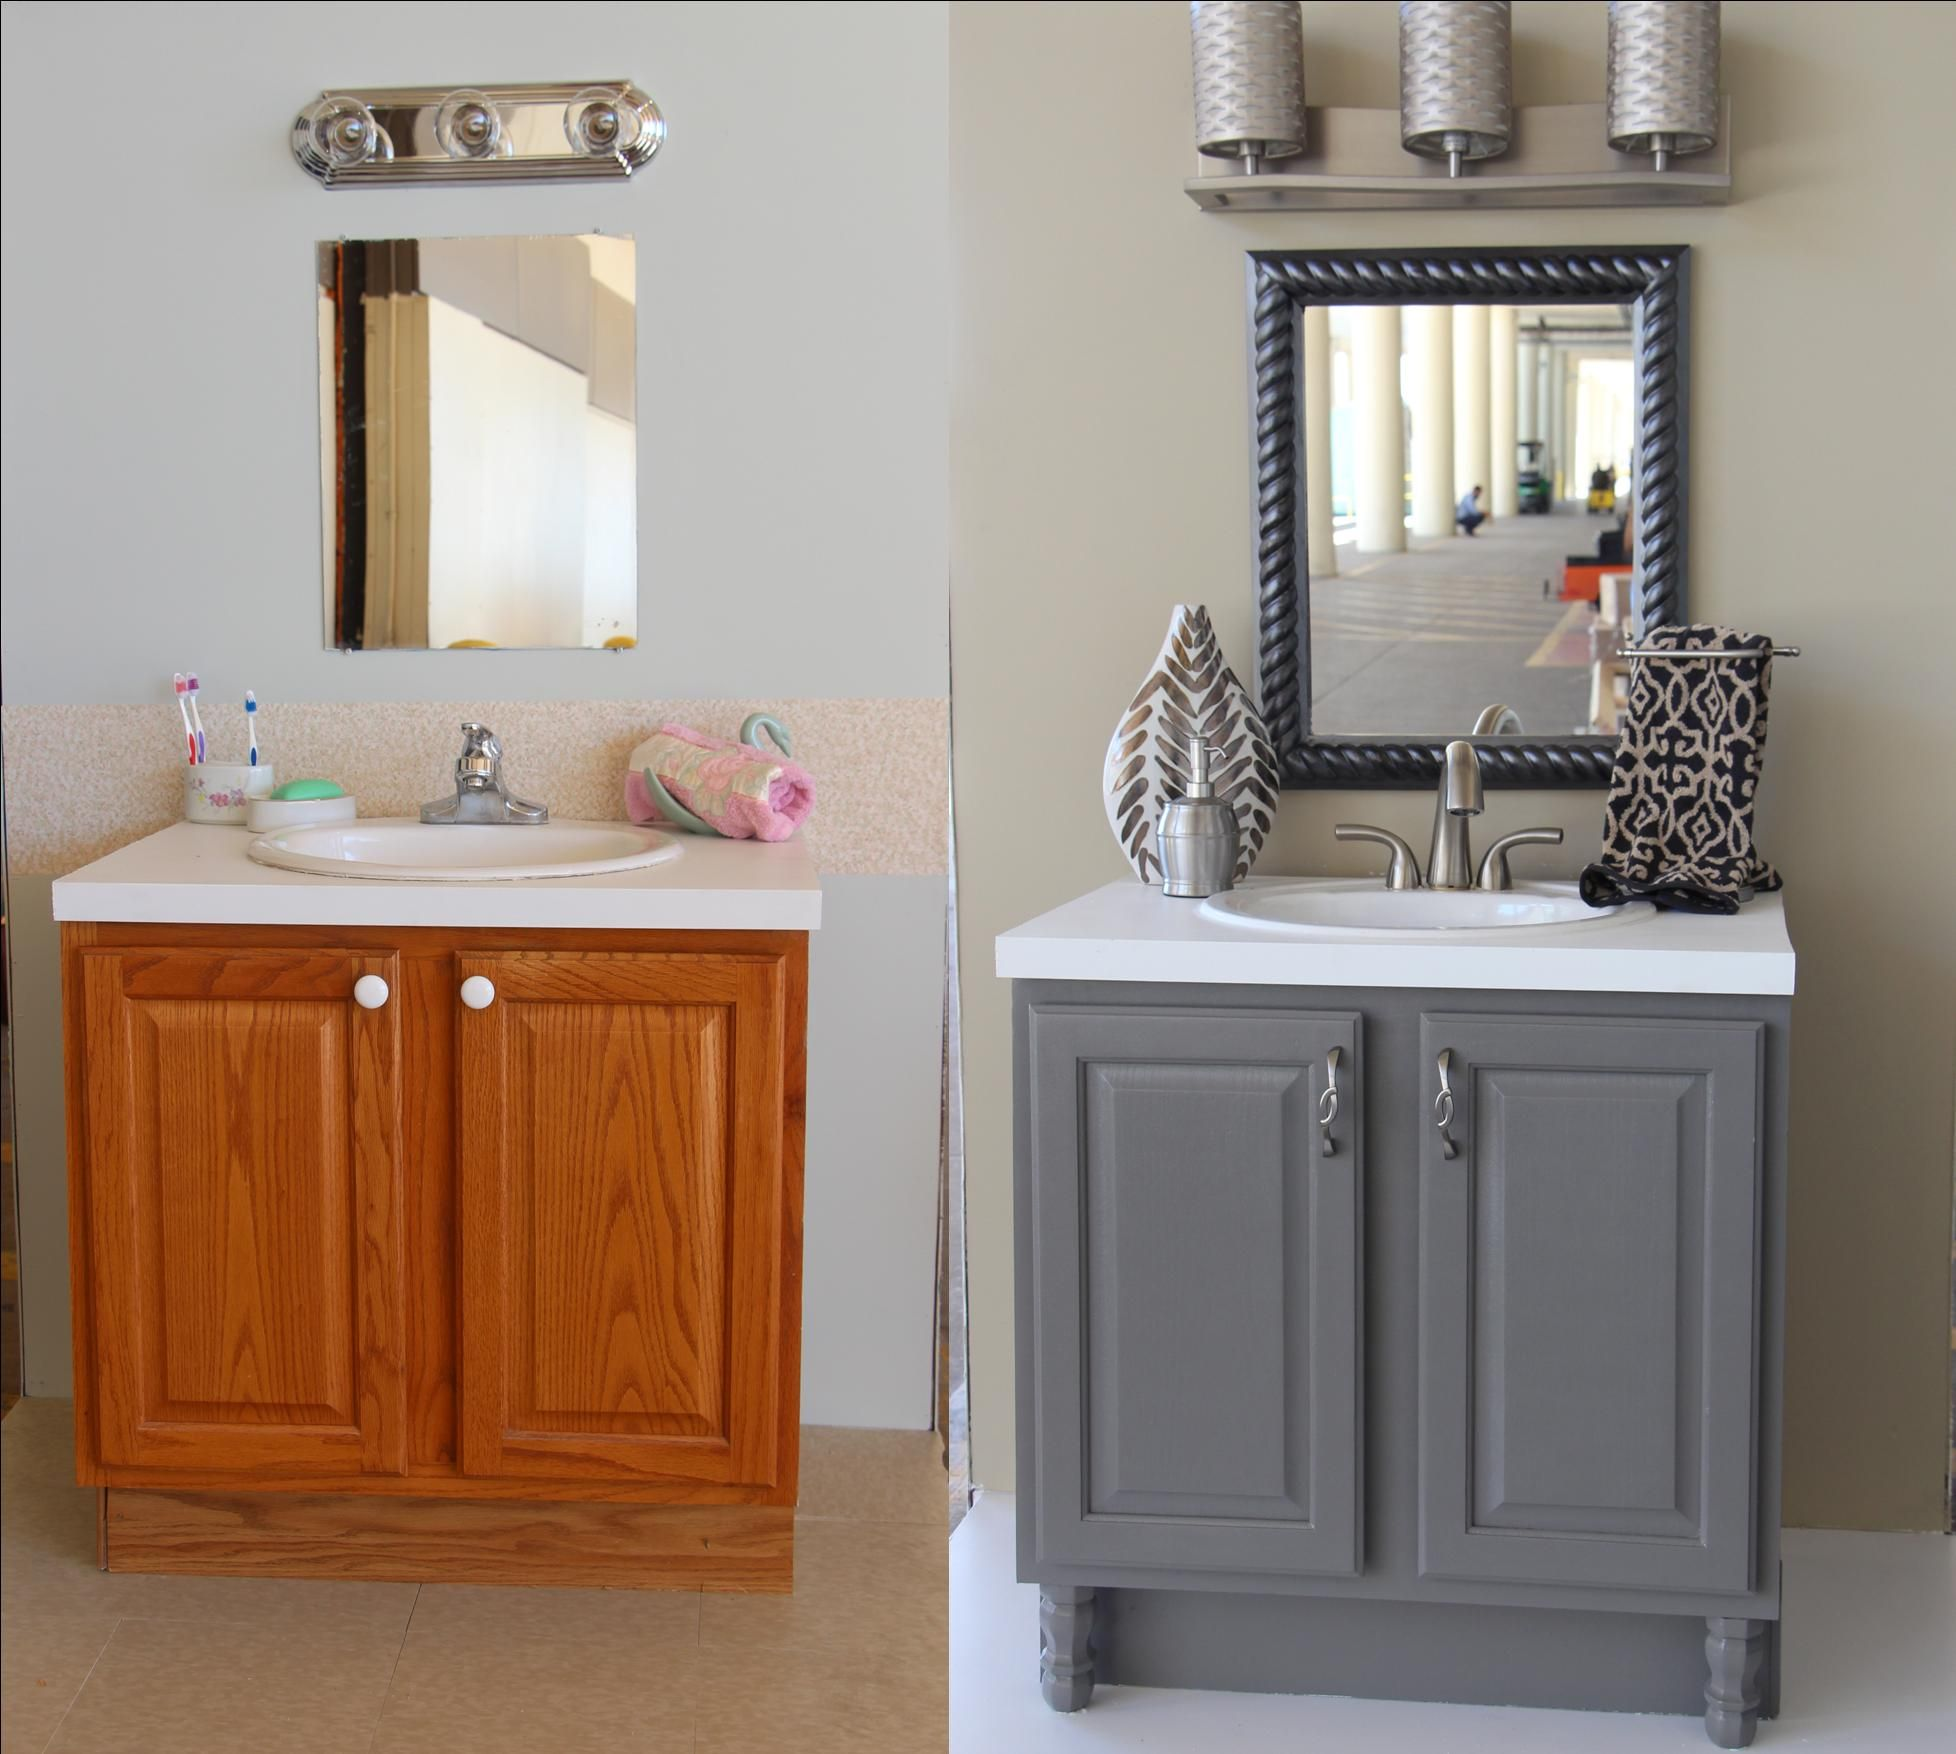 Ordinaire Trendsetter Bath Before And After With Accessories Upcycled Bathroom Ideas. Painting  Bathroom VanitiesPainted ...